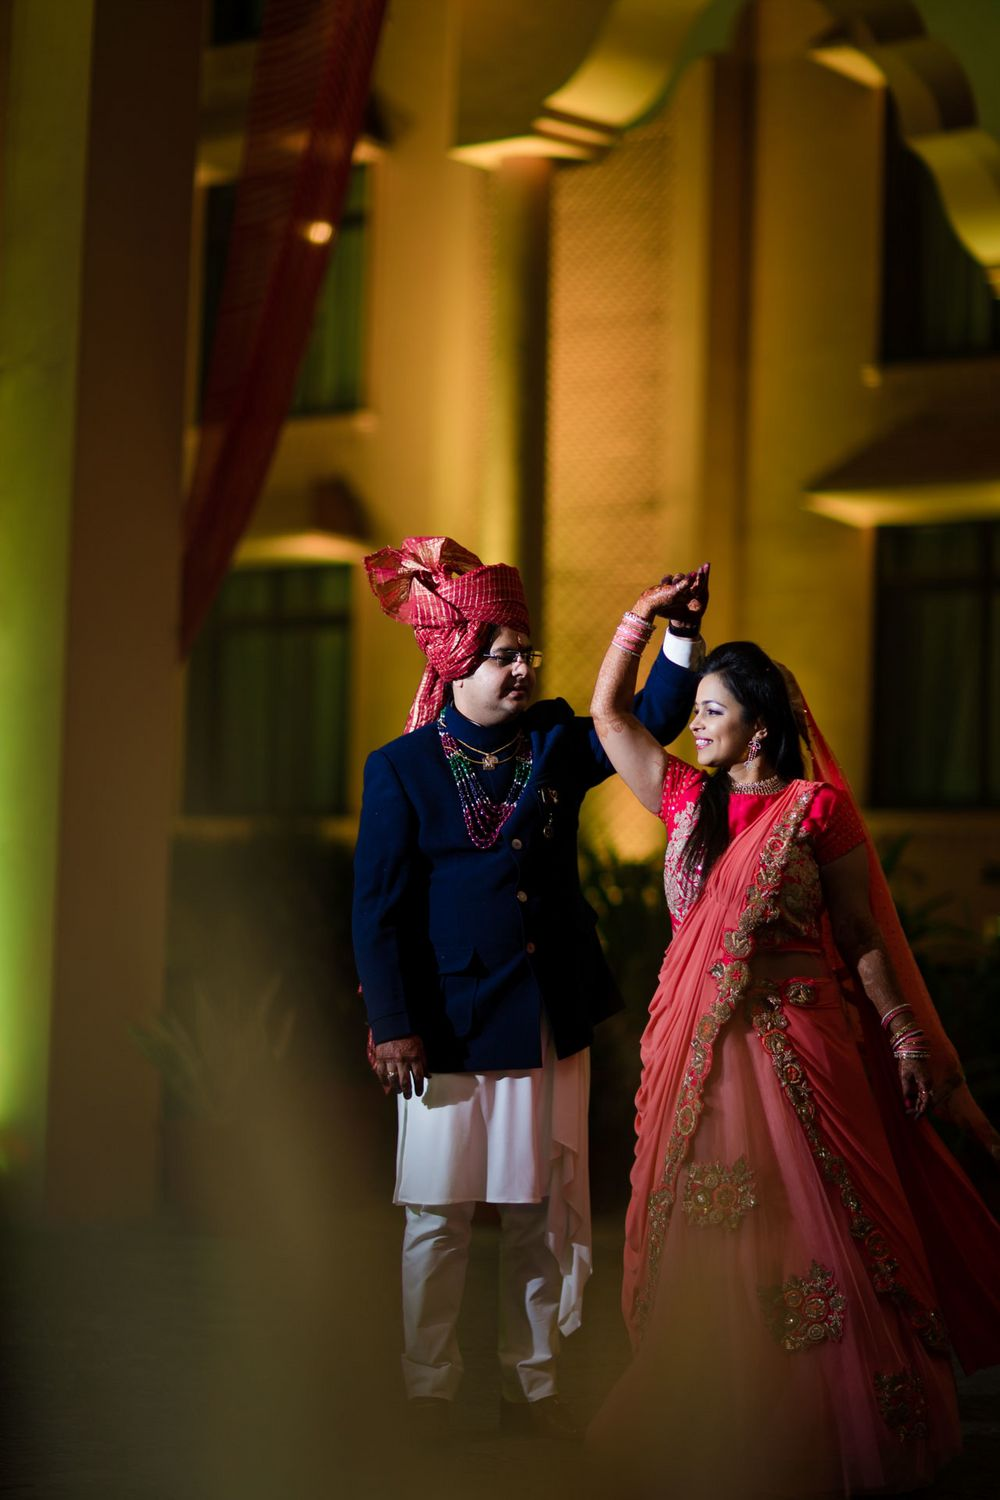 Photo From JYOTHI + MANIDHAR- A ROYAL WEDDING IN JAIPUR - By Hari Kiran Agnur